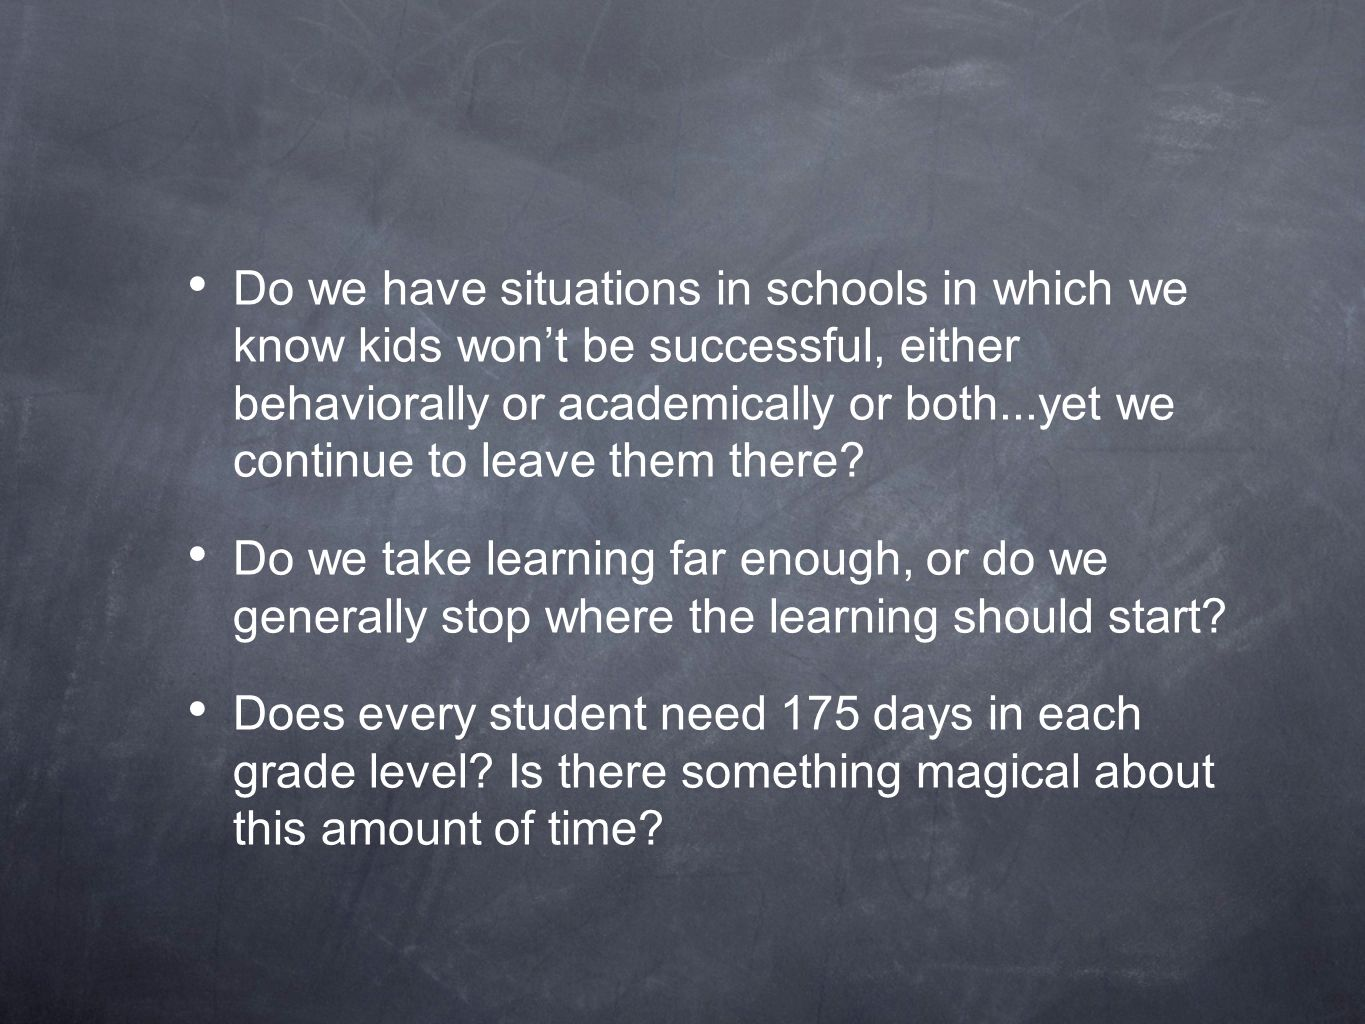 Do we have situations in schools in which we know kids wont be successful, either behaviorally or academically or both...yet we continue to leave them there.